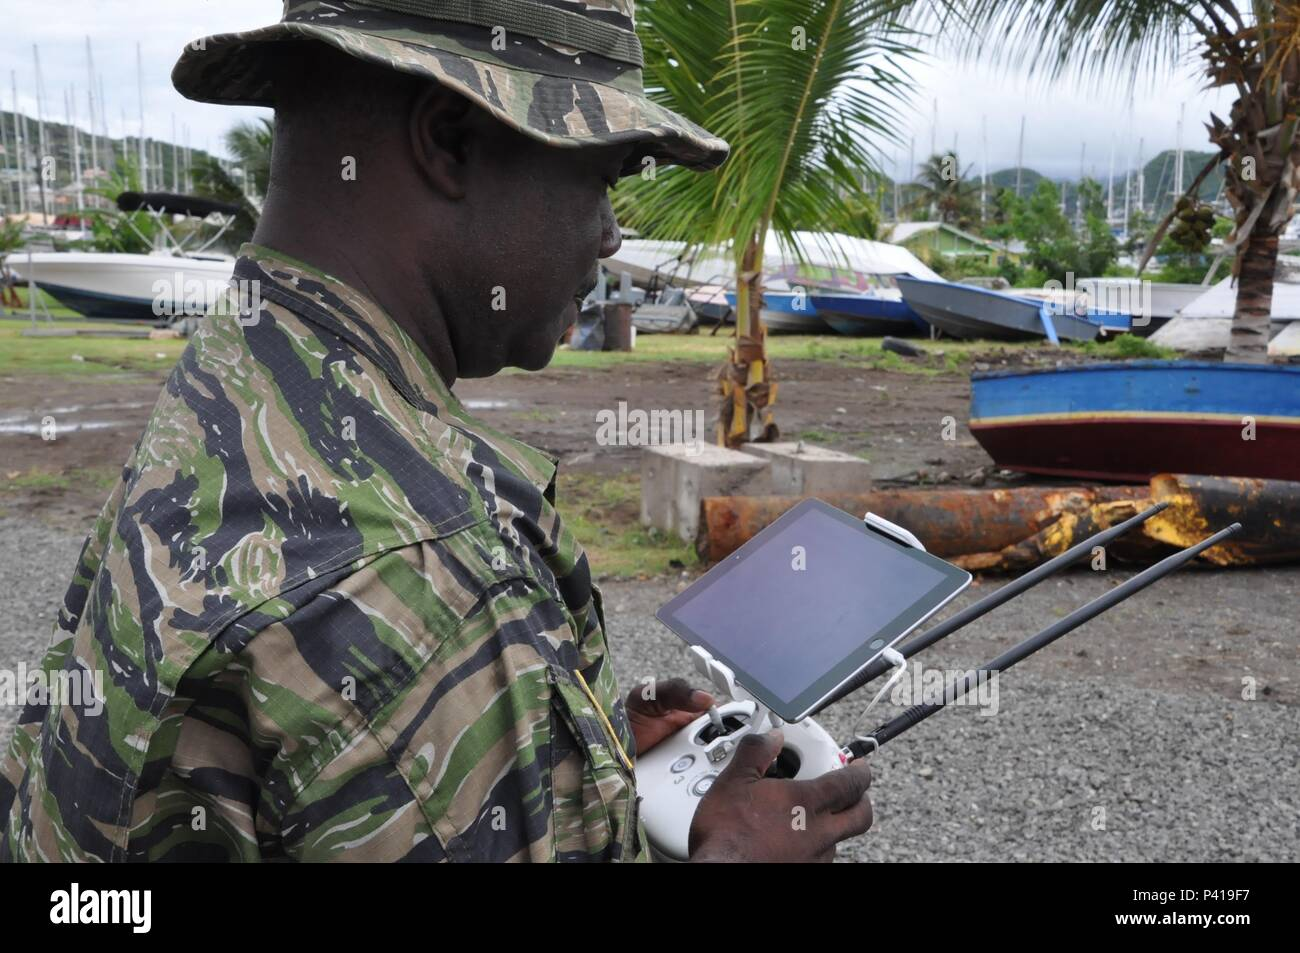 Lt. Regiwell A. Francis, from the St. Kitts and Nevis Defense Force, operates a drone June 6, 2016 in St. George's, Grenada, as part of Tradewinds 2016. Tradewinds 2016 is a joint combined exercise conducted in conjunction with partner nations to enhance the collective abilities of defense forces and constabularies to counter transnational organized crime and to conduct humanitarian/disaster relief operations.  U.S. Coast Guard photo by Petty Officer 1st Class Melissa Leake - Stock Image